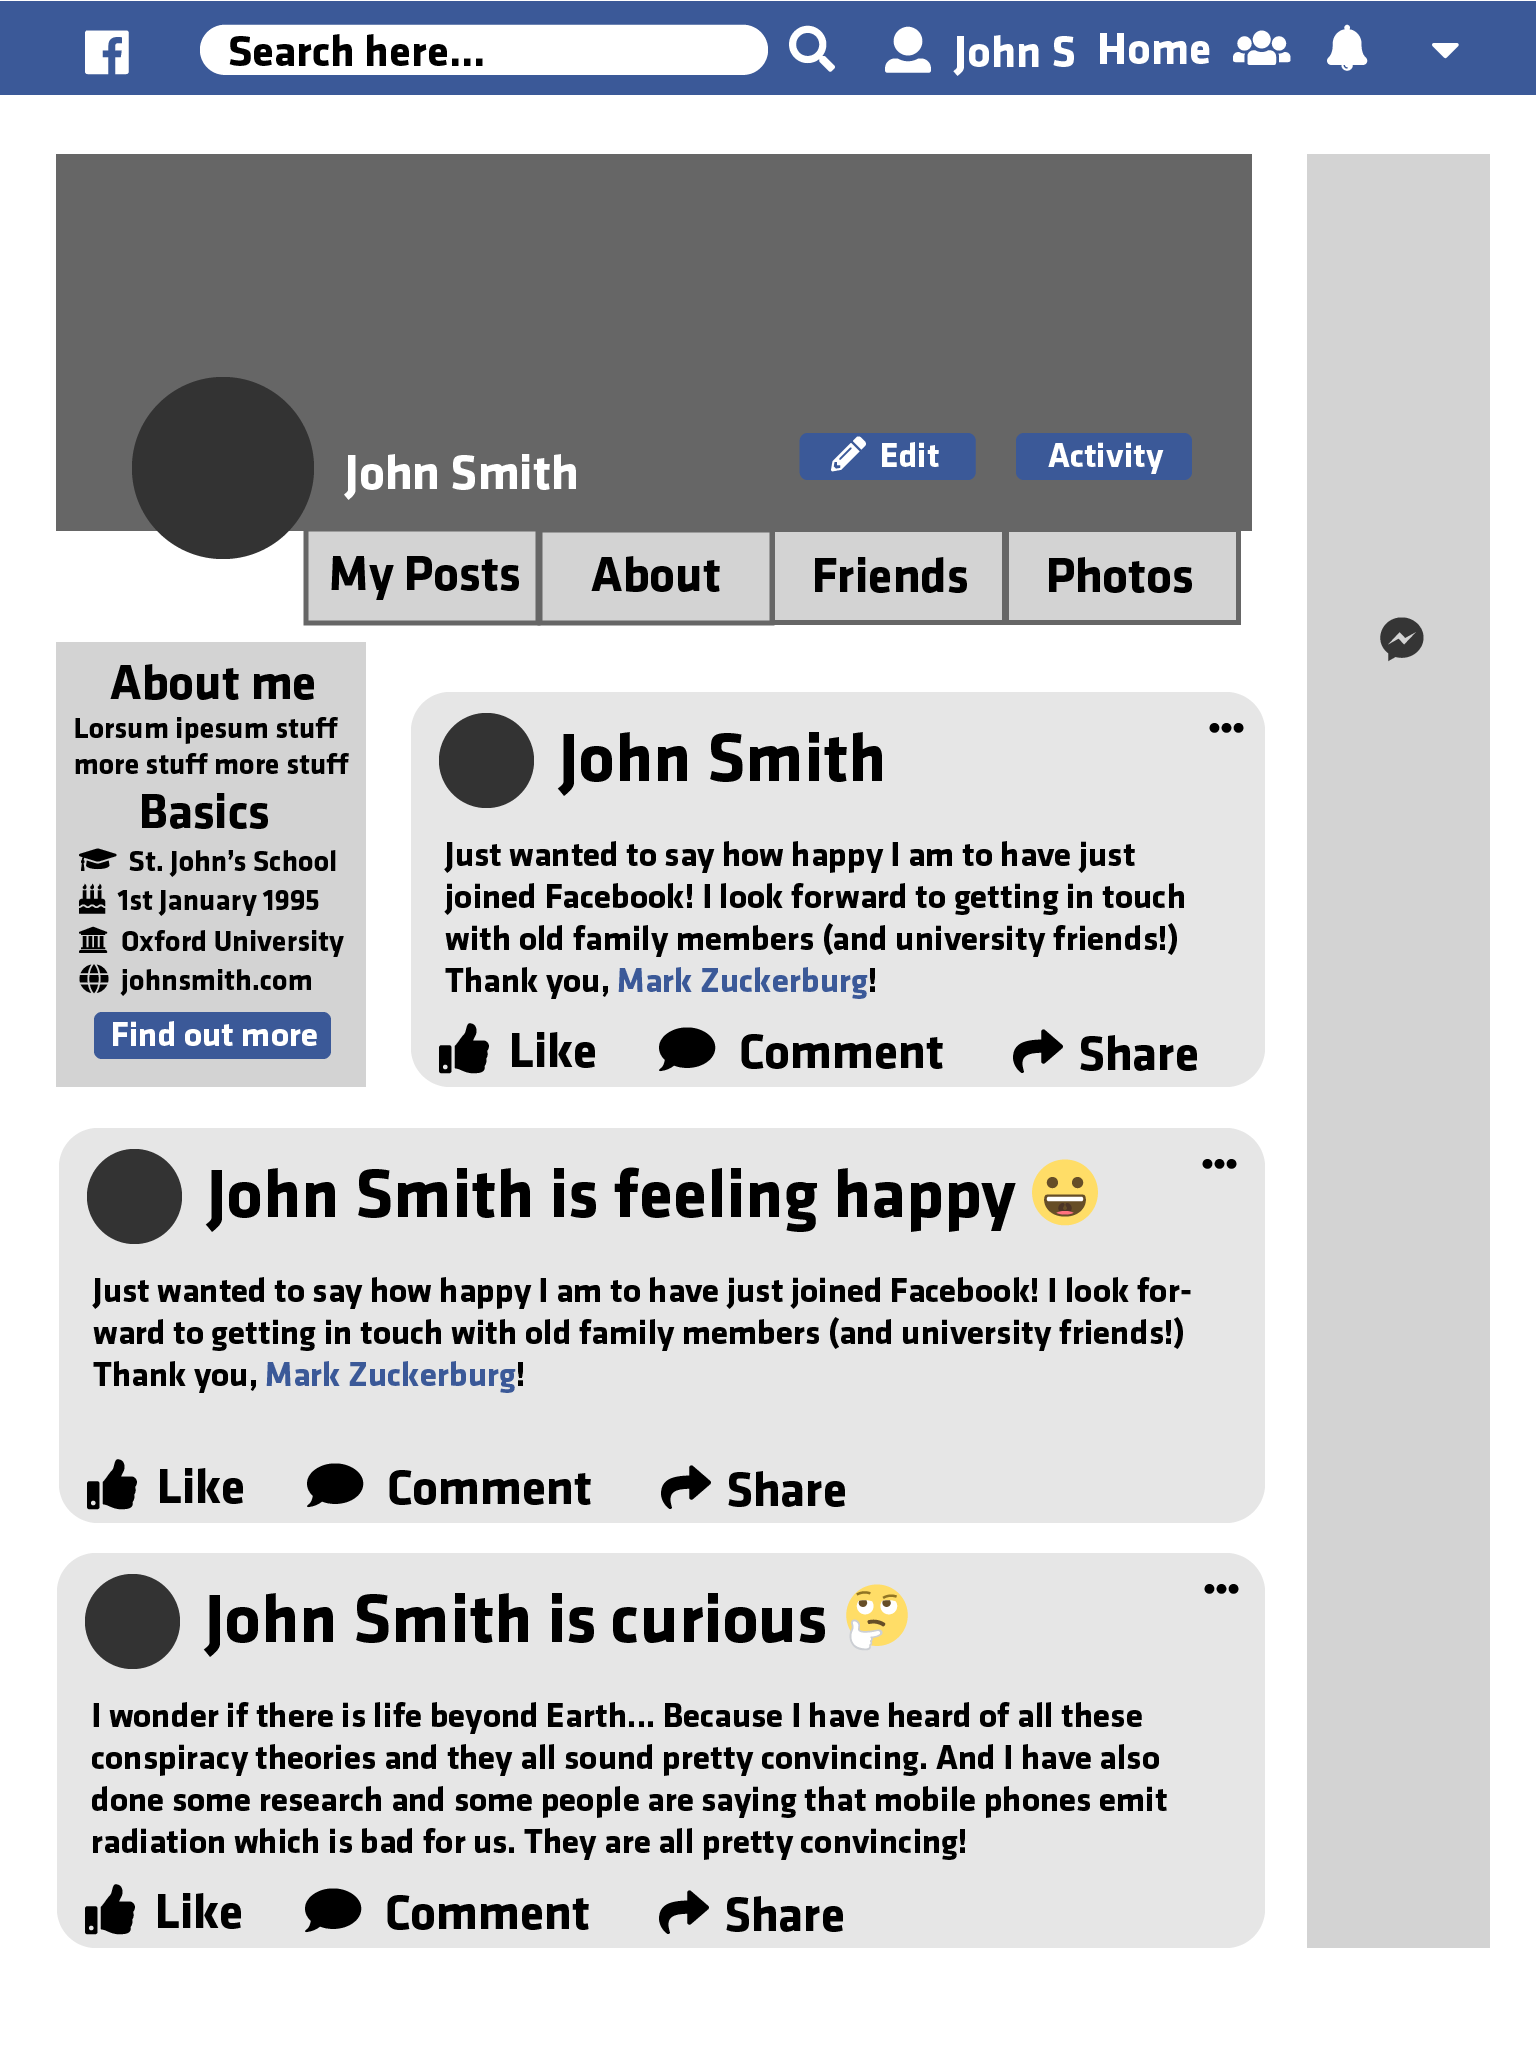 The Facebook profile page